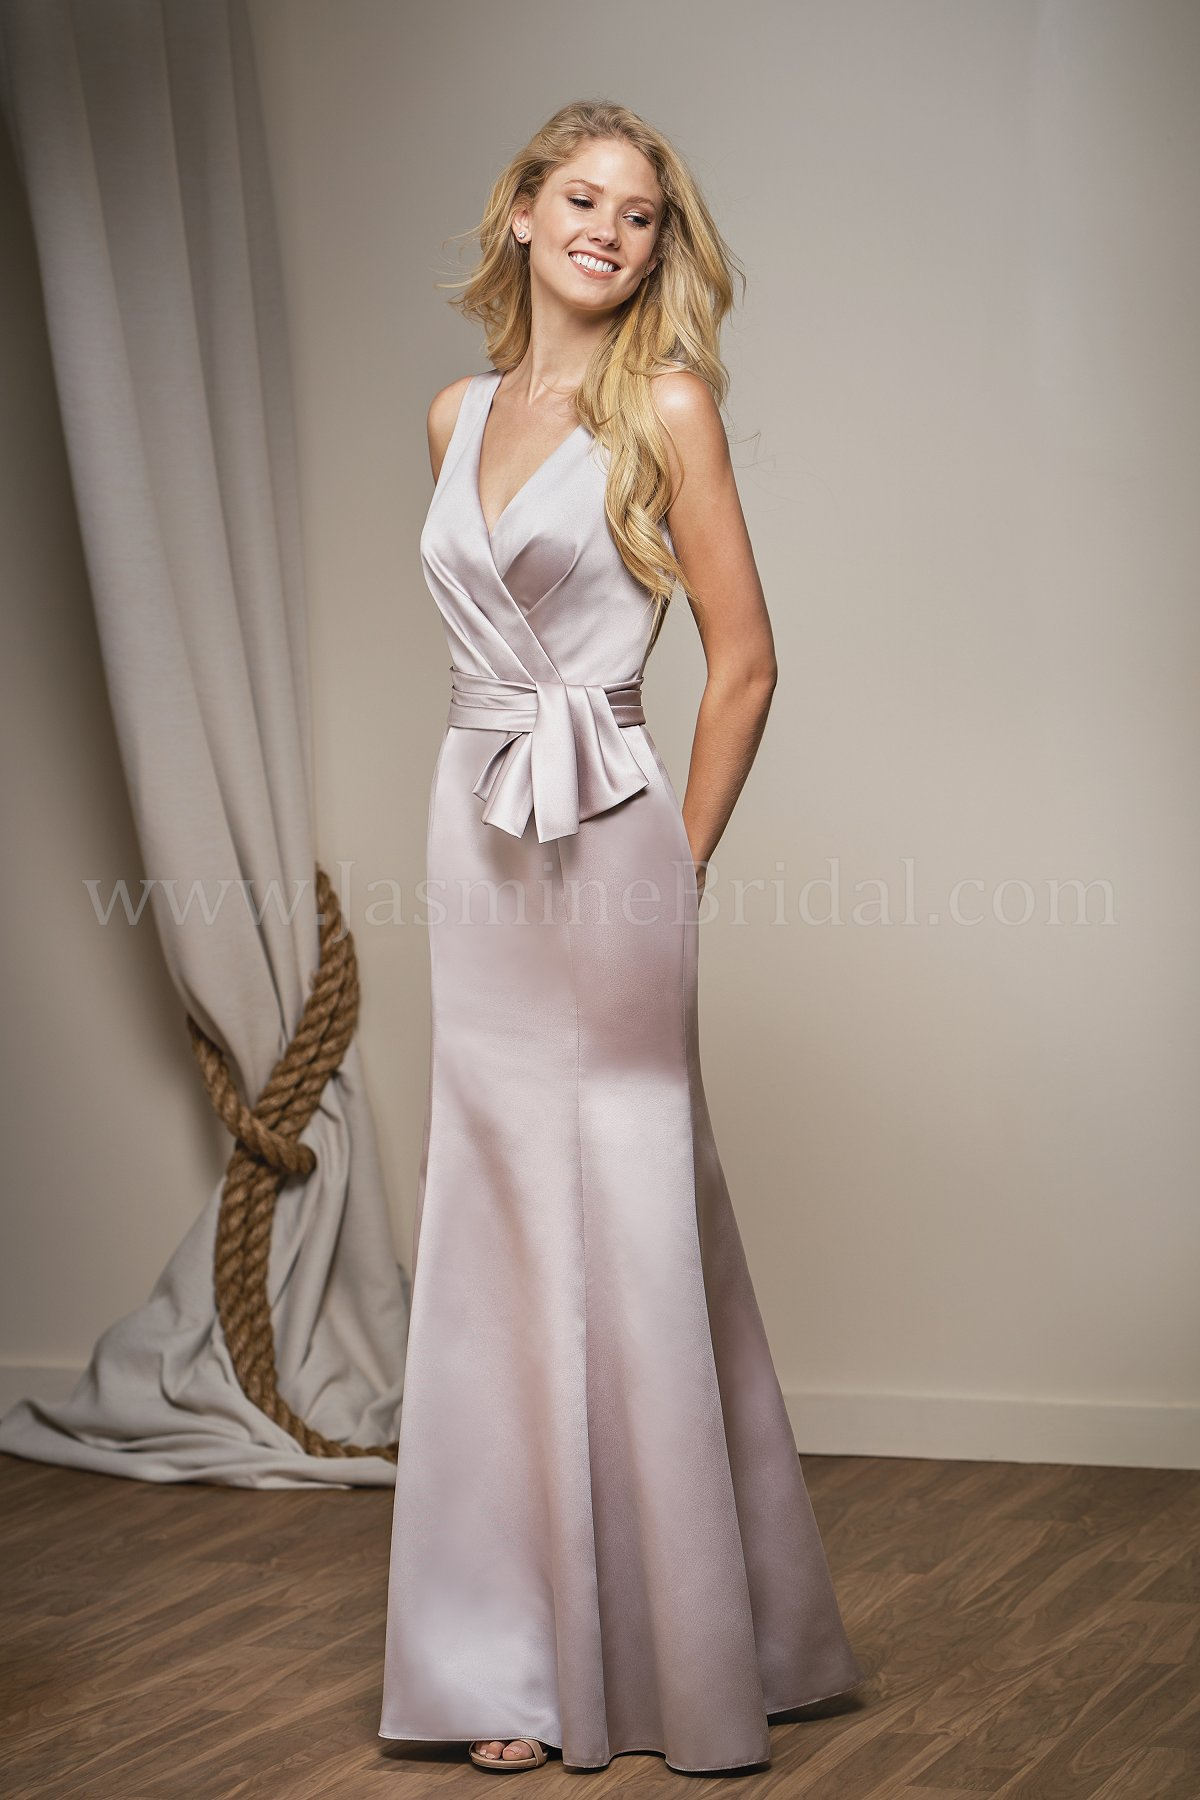 L204012 long v neck marquis satin bridesmaid dress with sash ombrellifo Choice Image